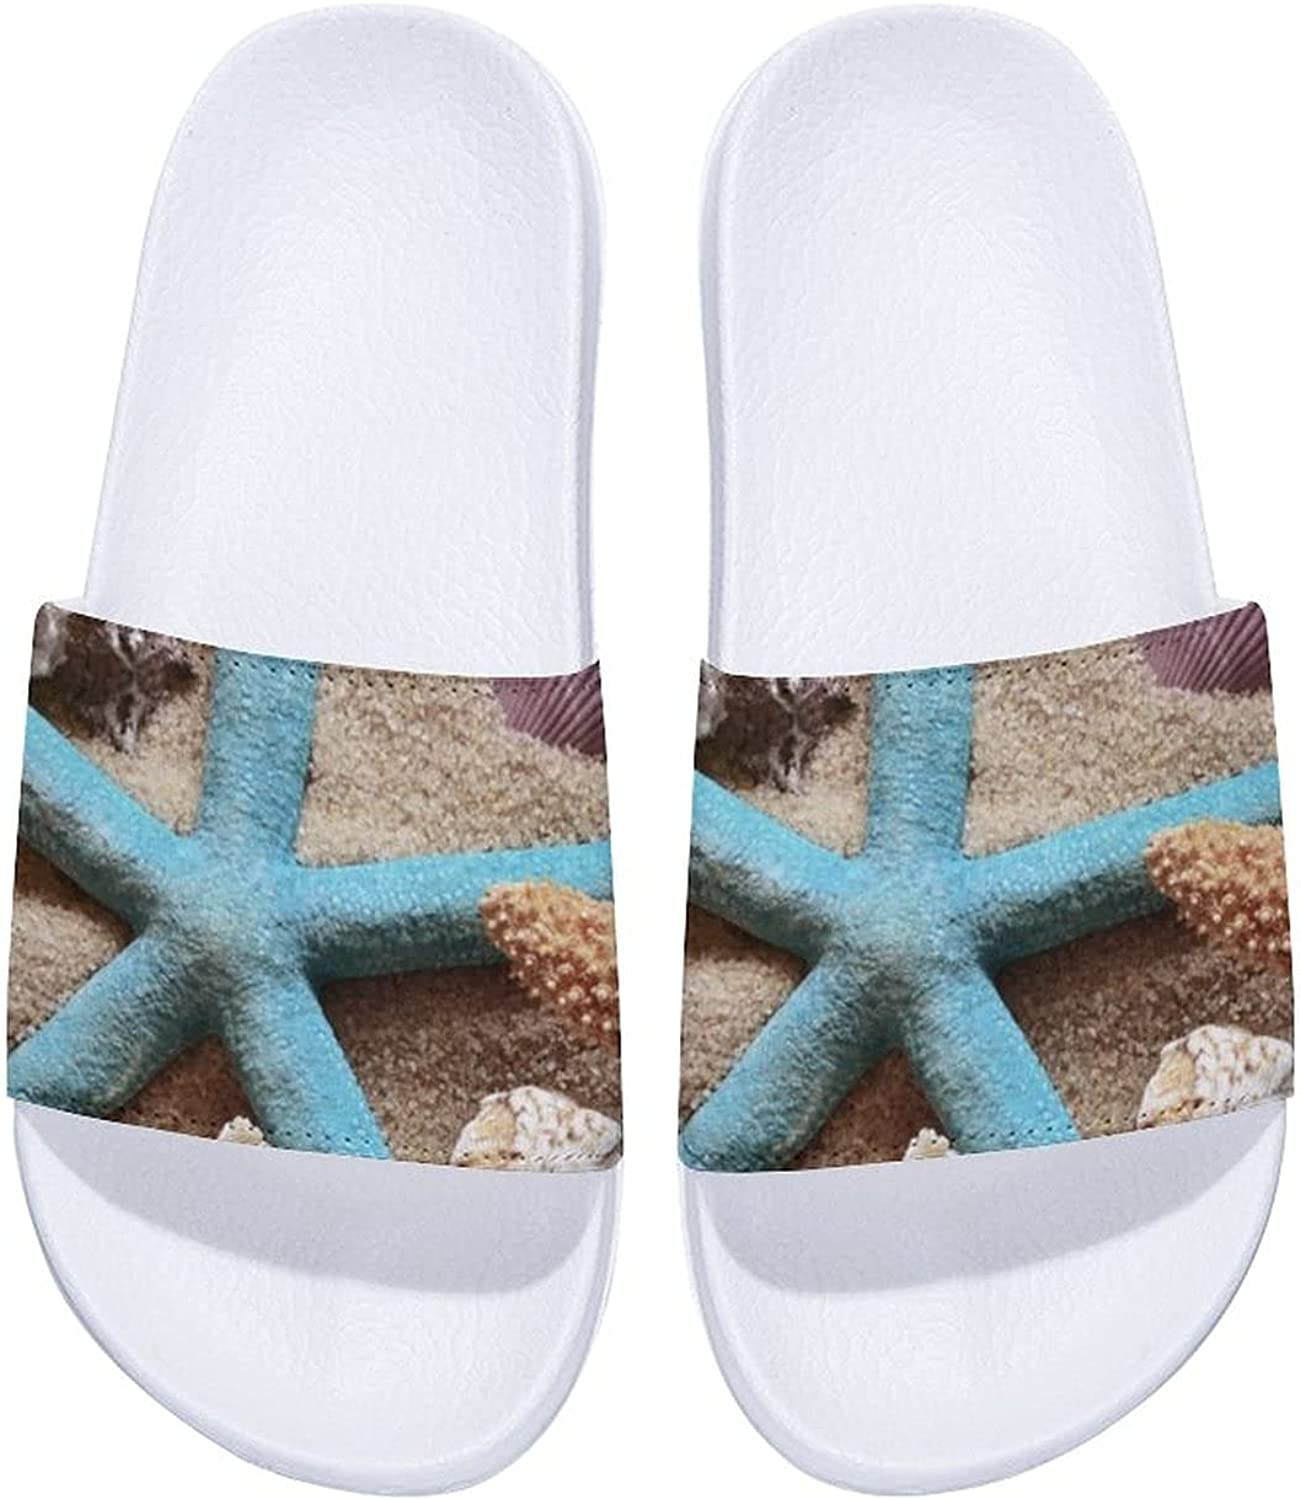 Shells And Starfish lowest price Pattern-1 Men's Women's and Comfort Slide It is very popular Sa